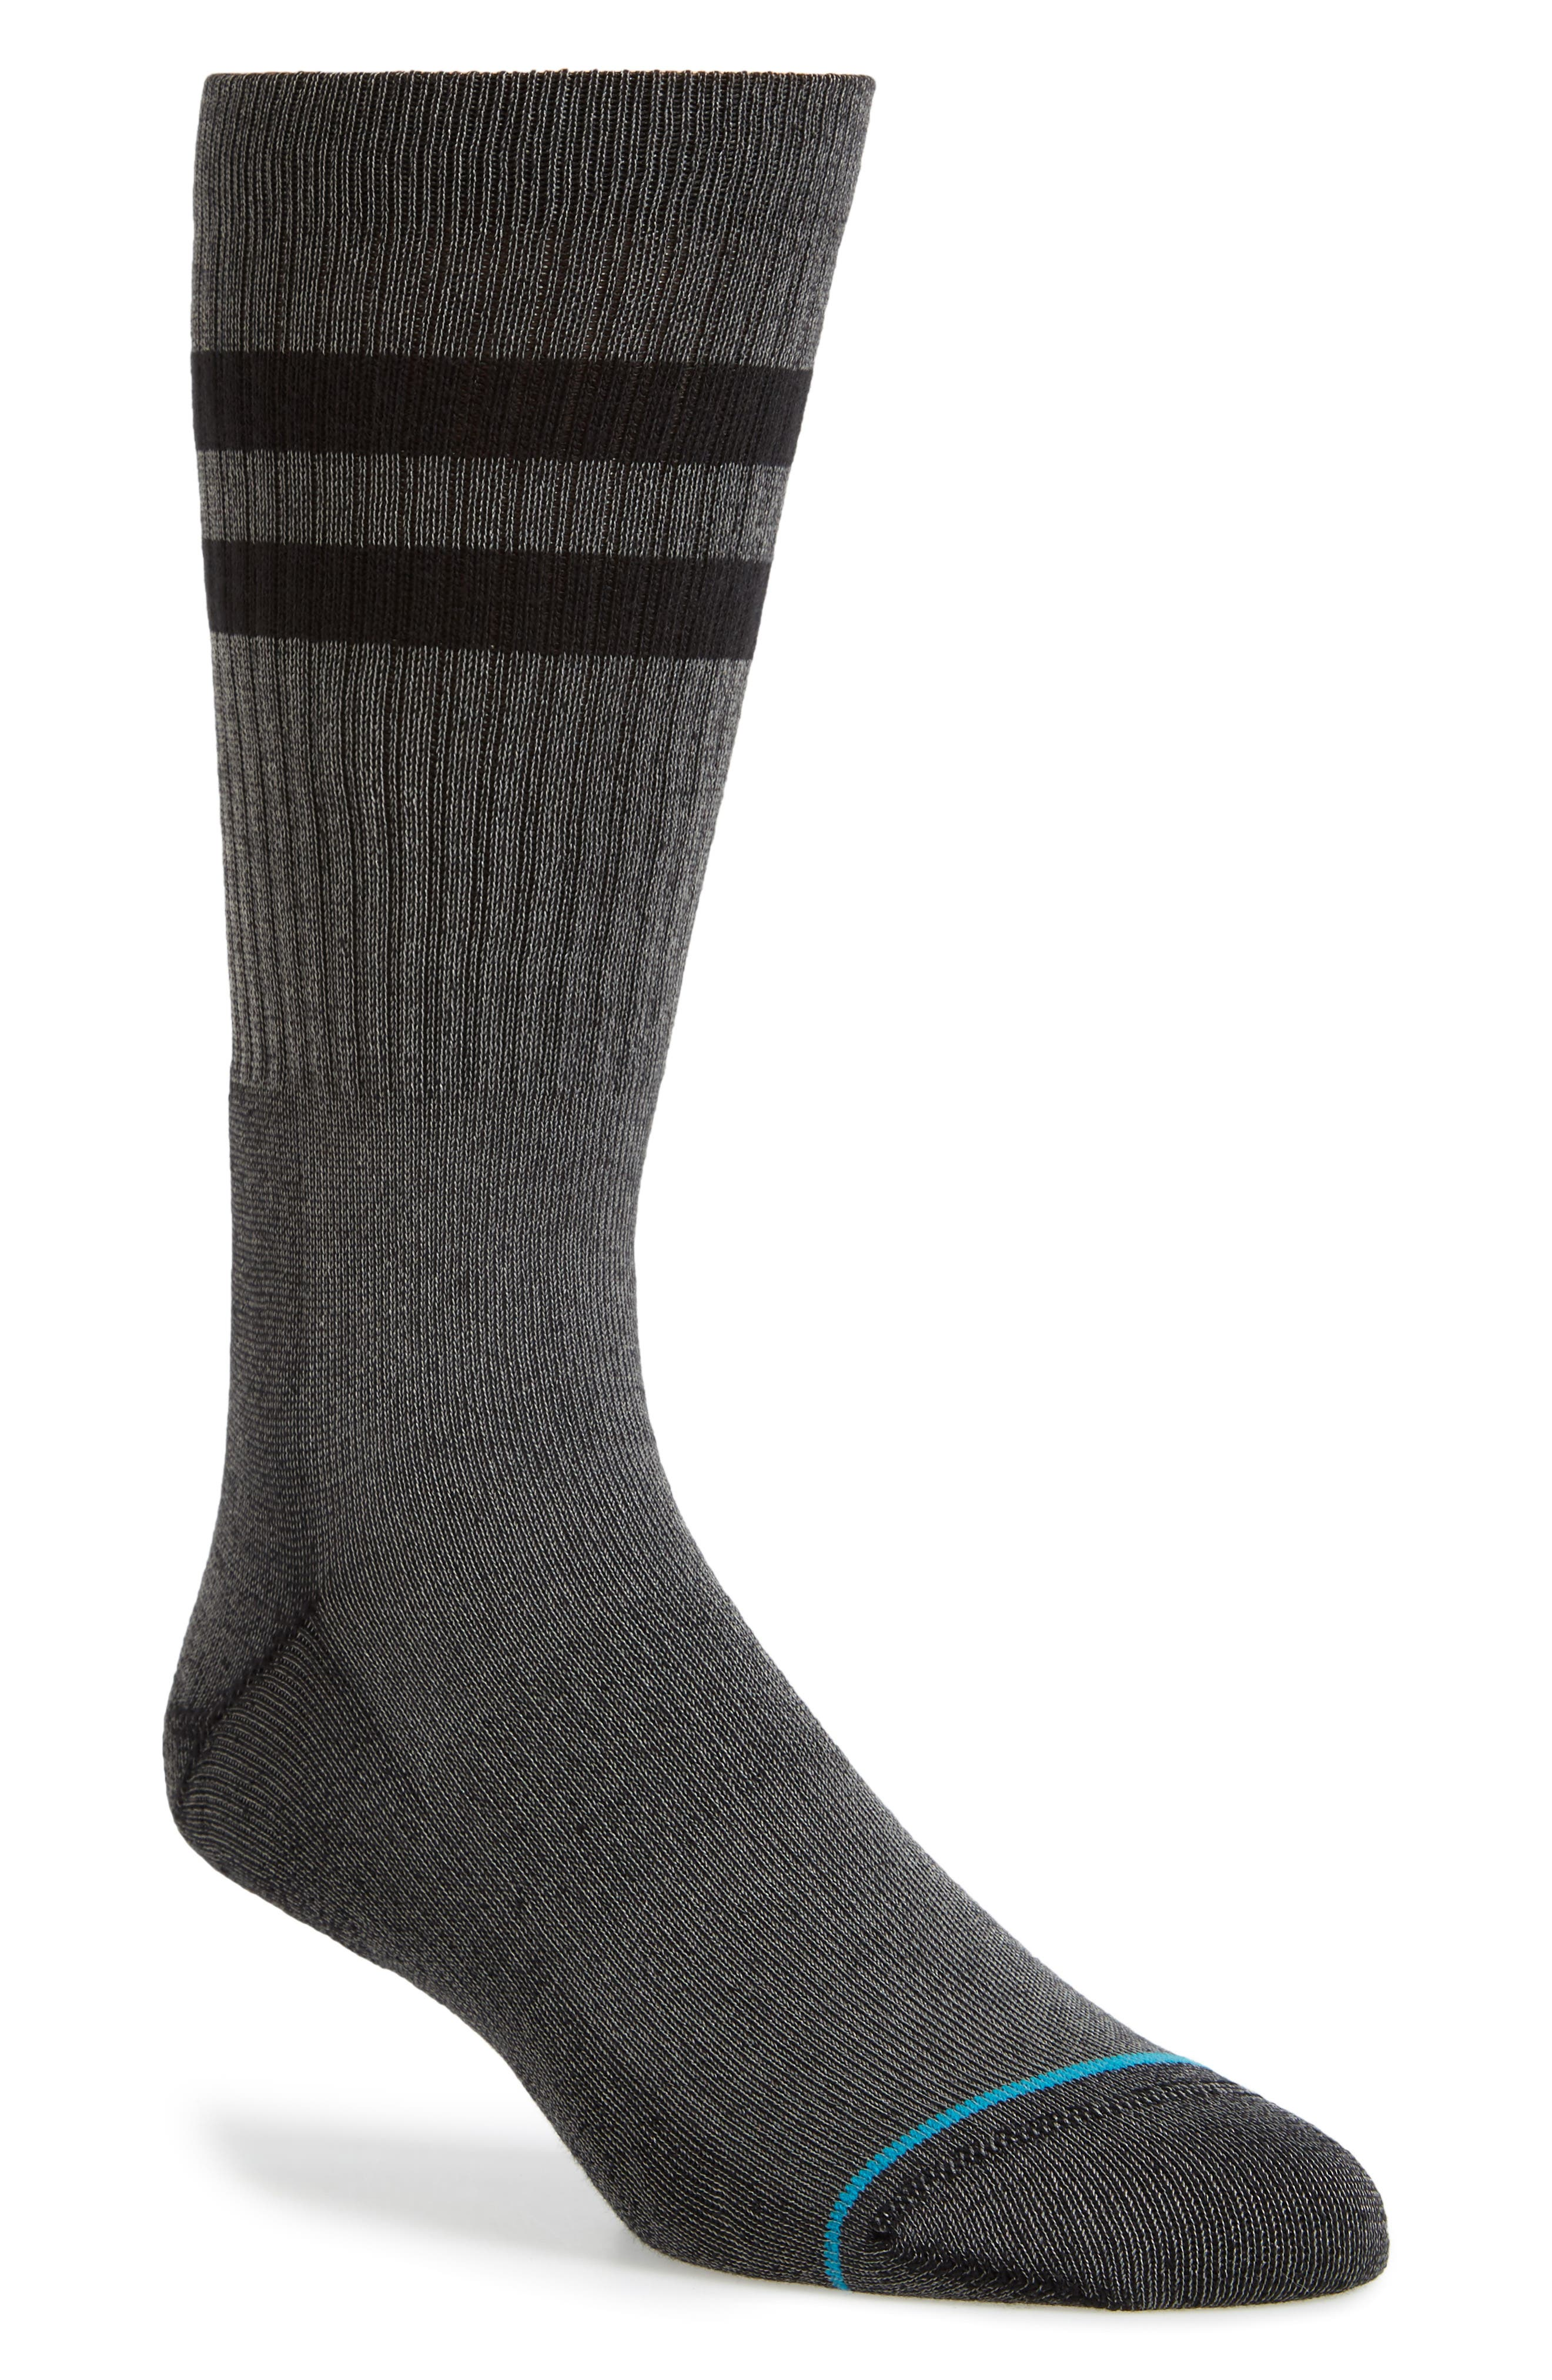 Alternate Image 1 Selected - Stance Joven Classic Crew Socks